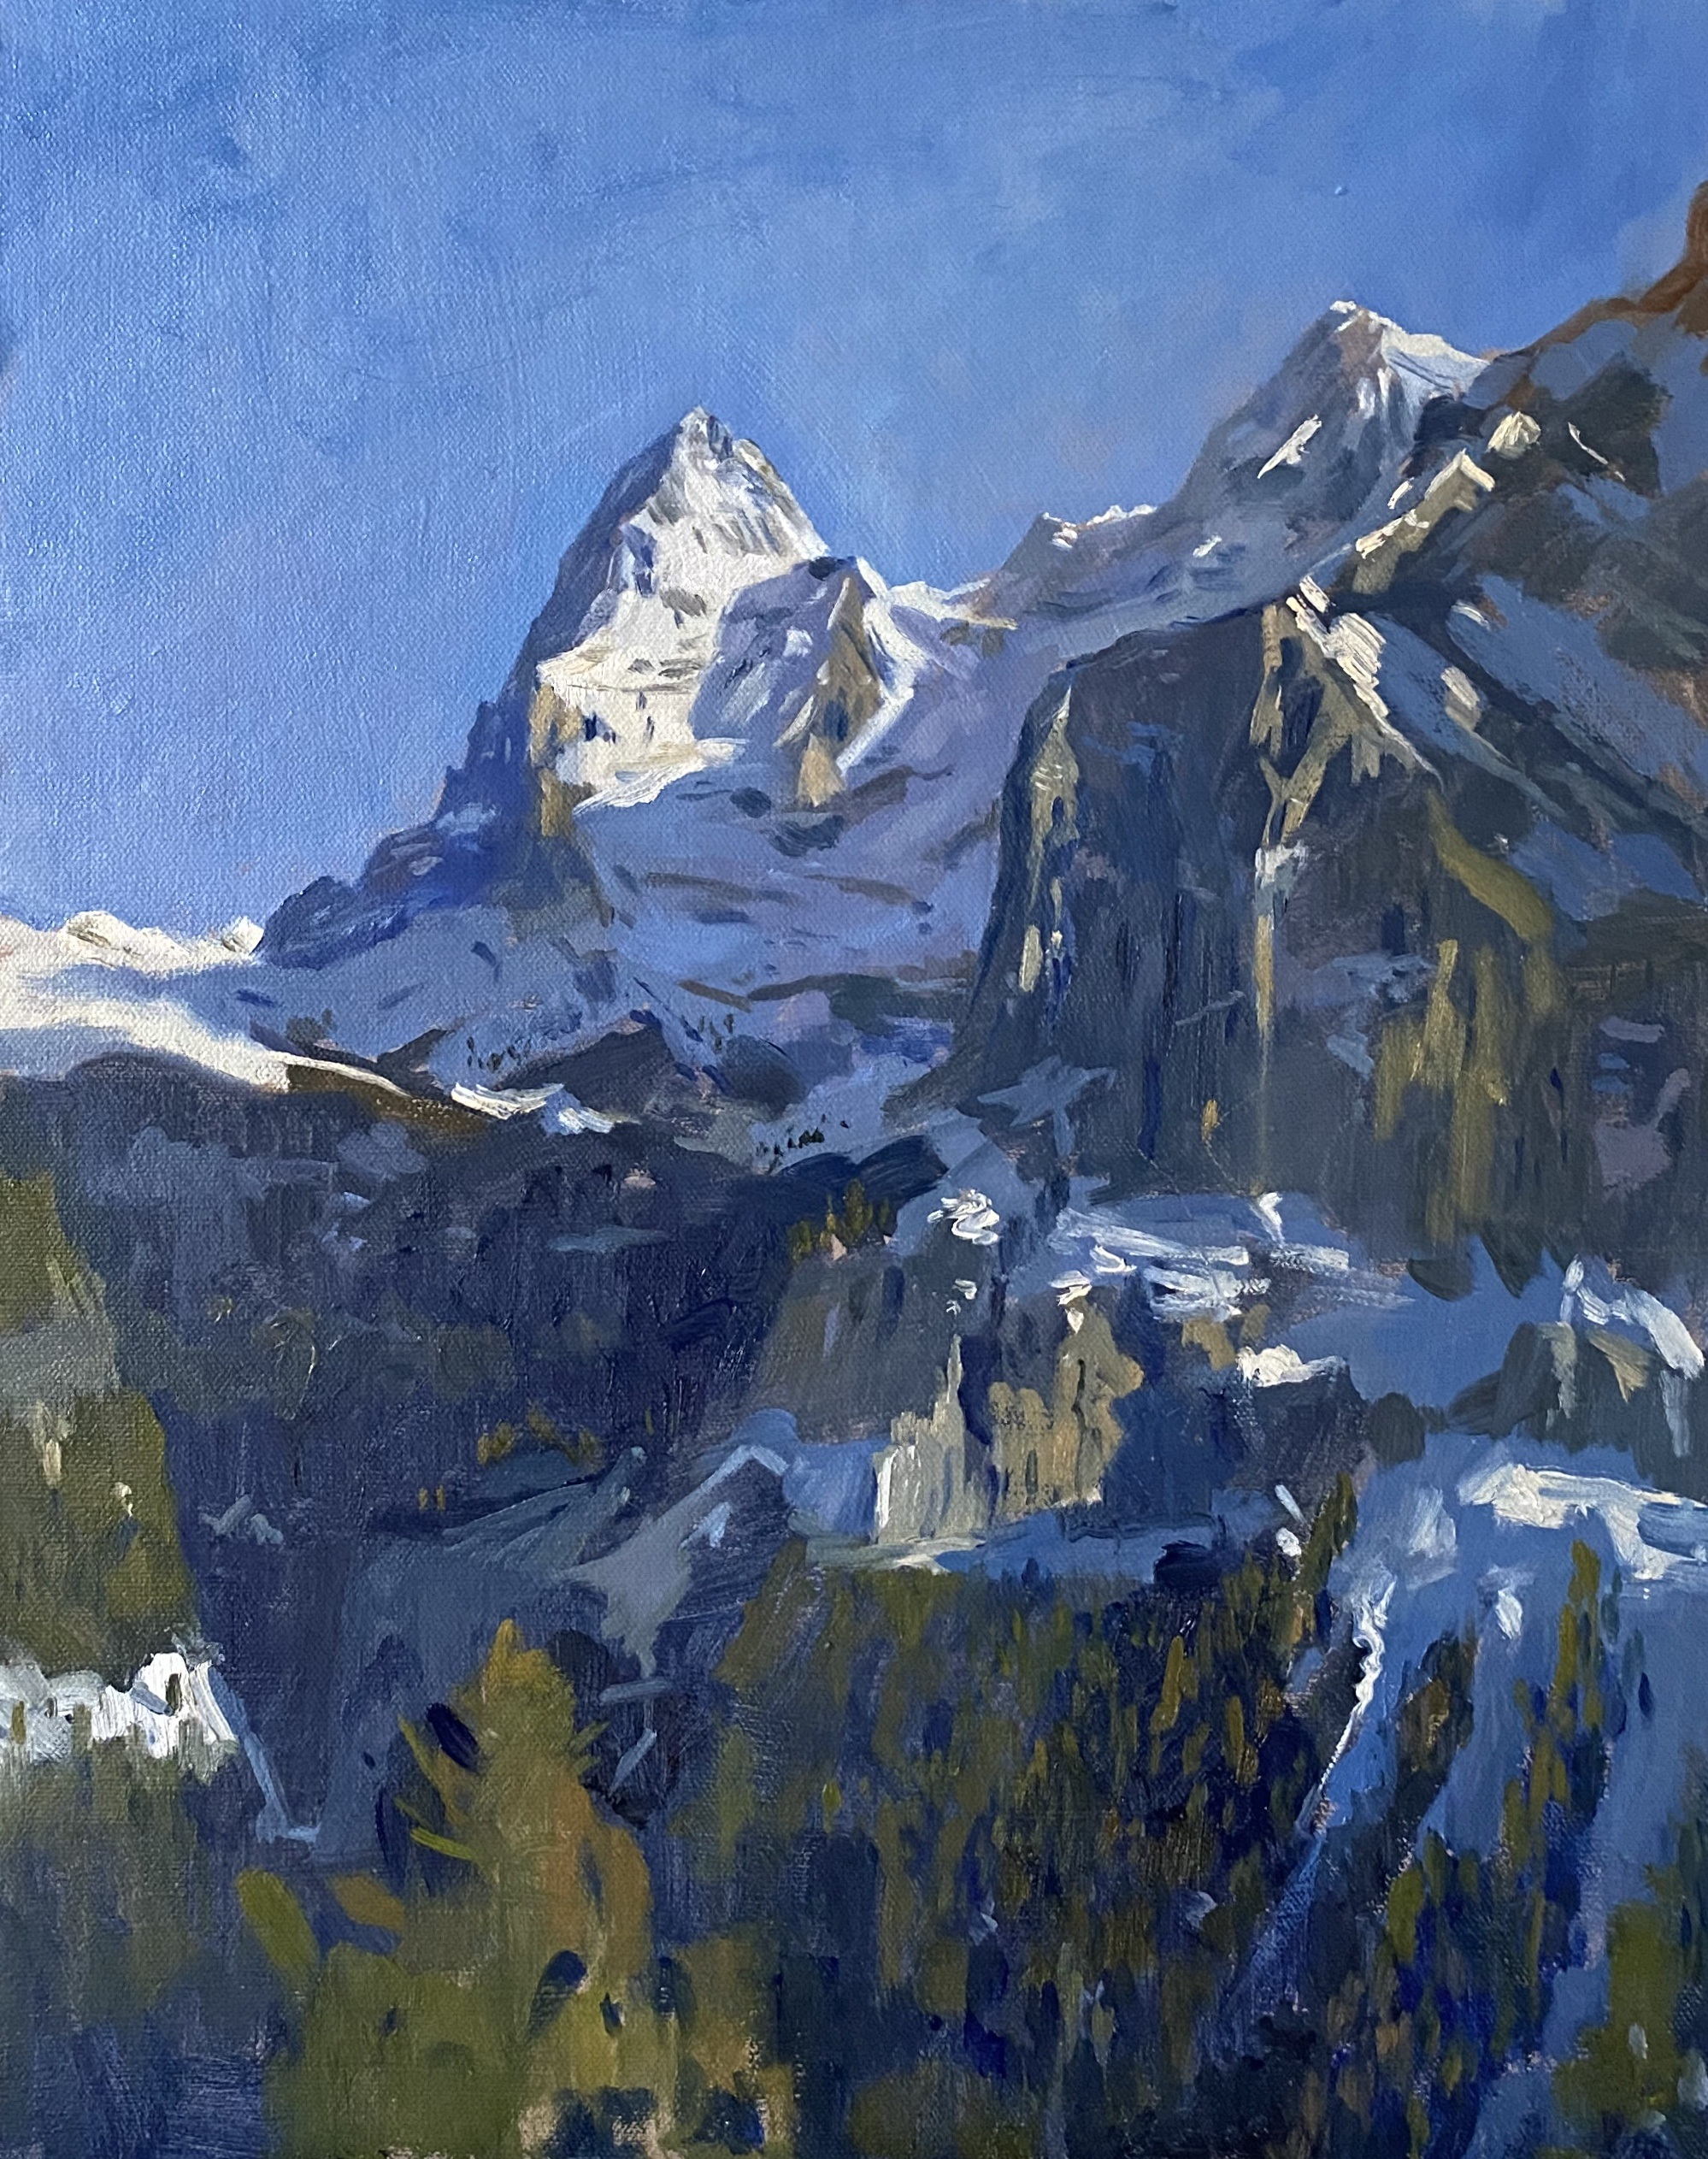 Afternoon Light, The Eiger from Murren